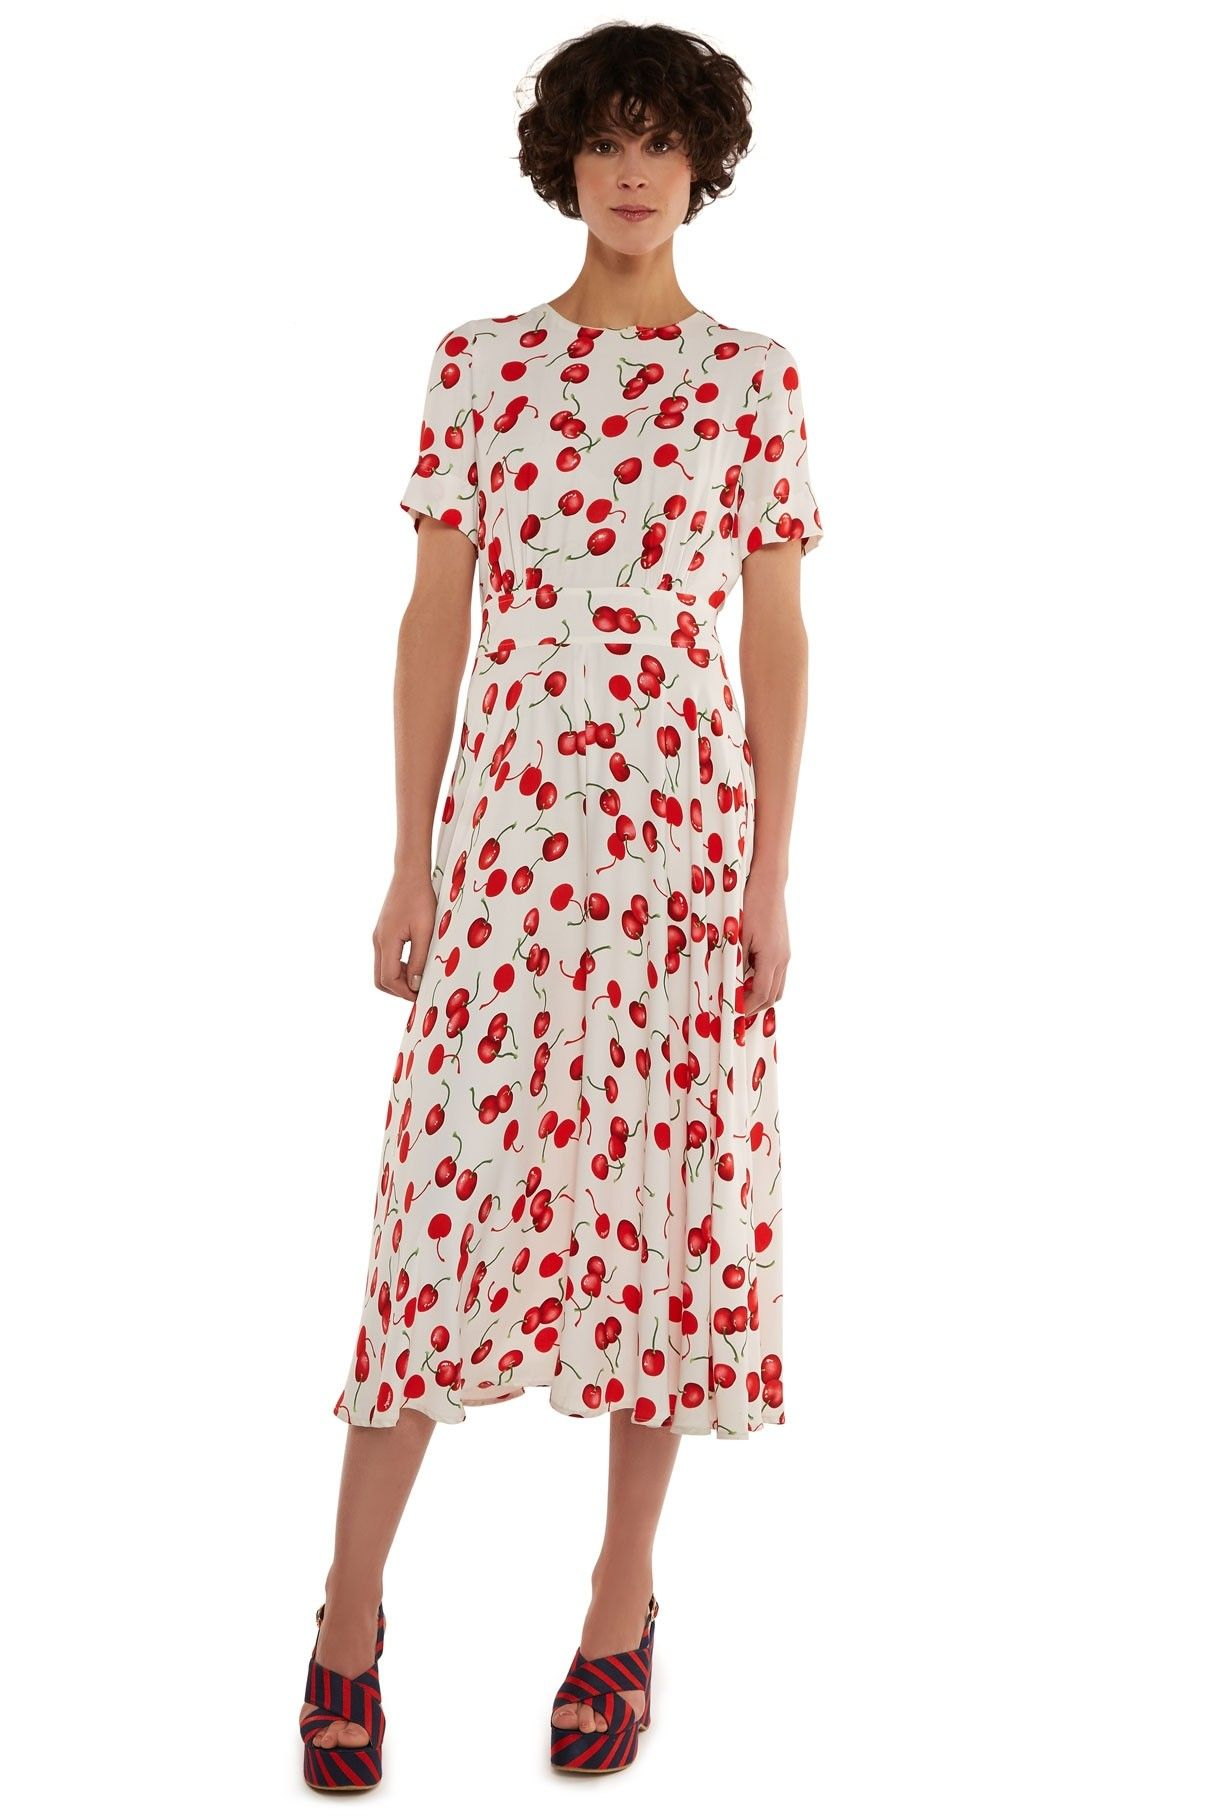 0f978dedf7 Pear dress p4ow | Modern 1930's and 40's Inspired Tea Dresses ...